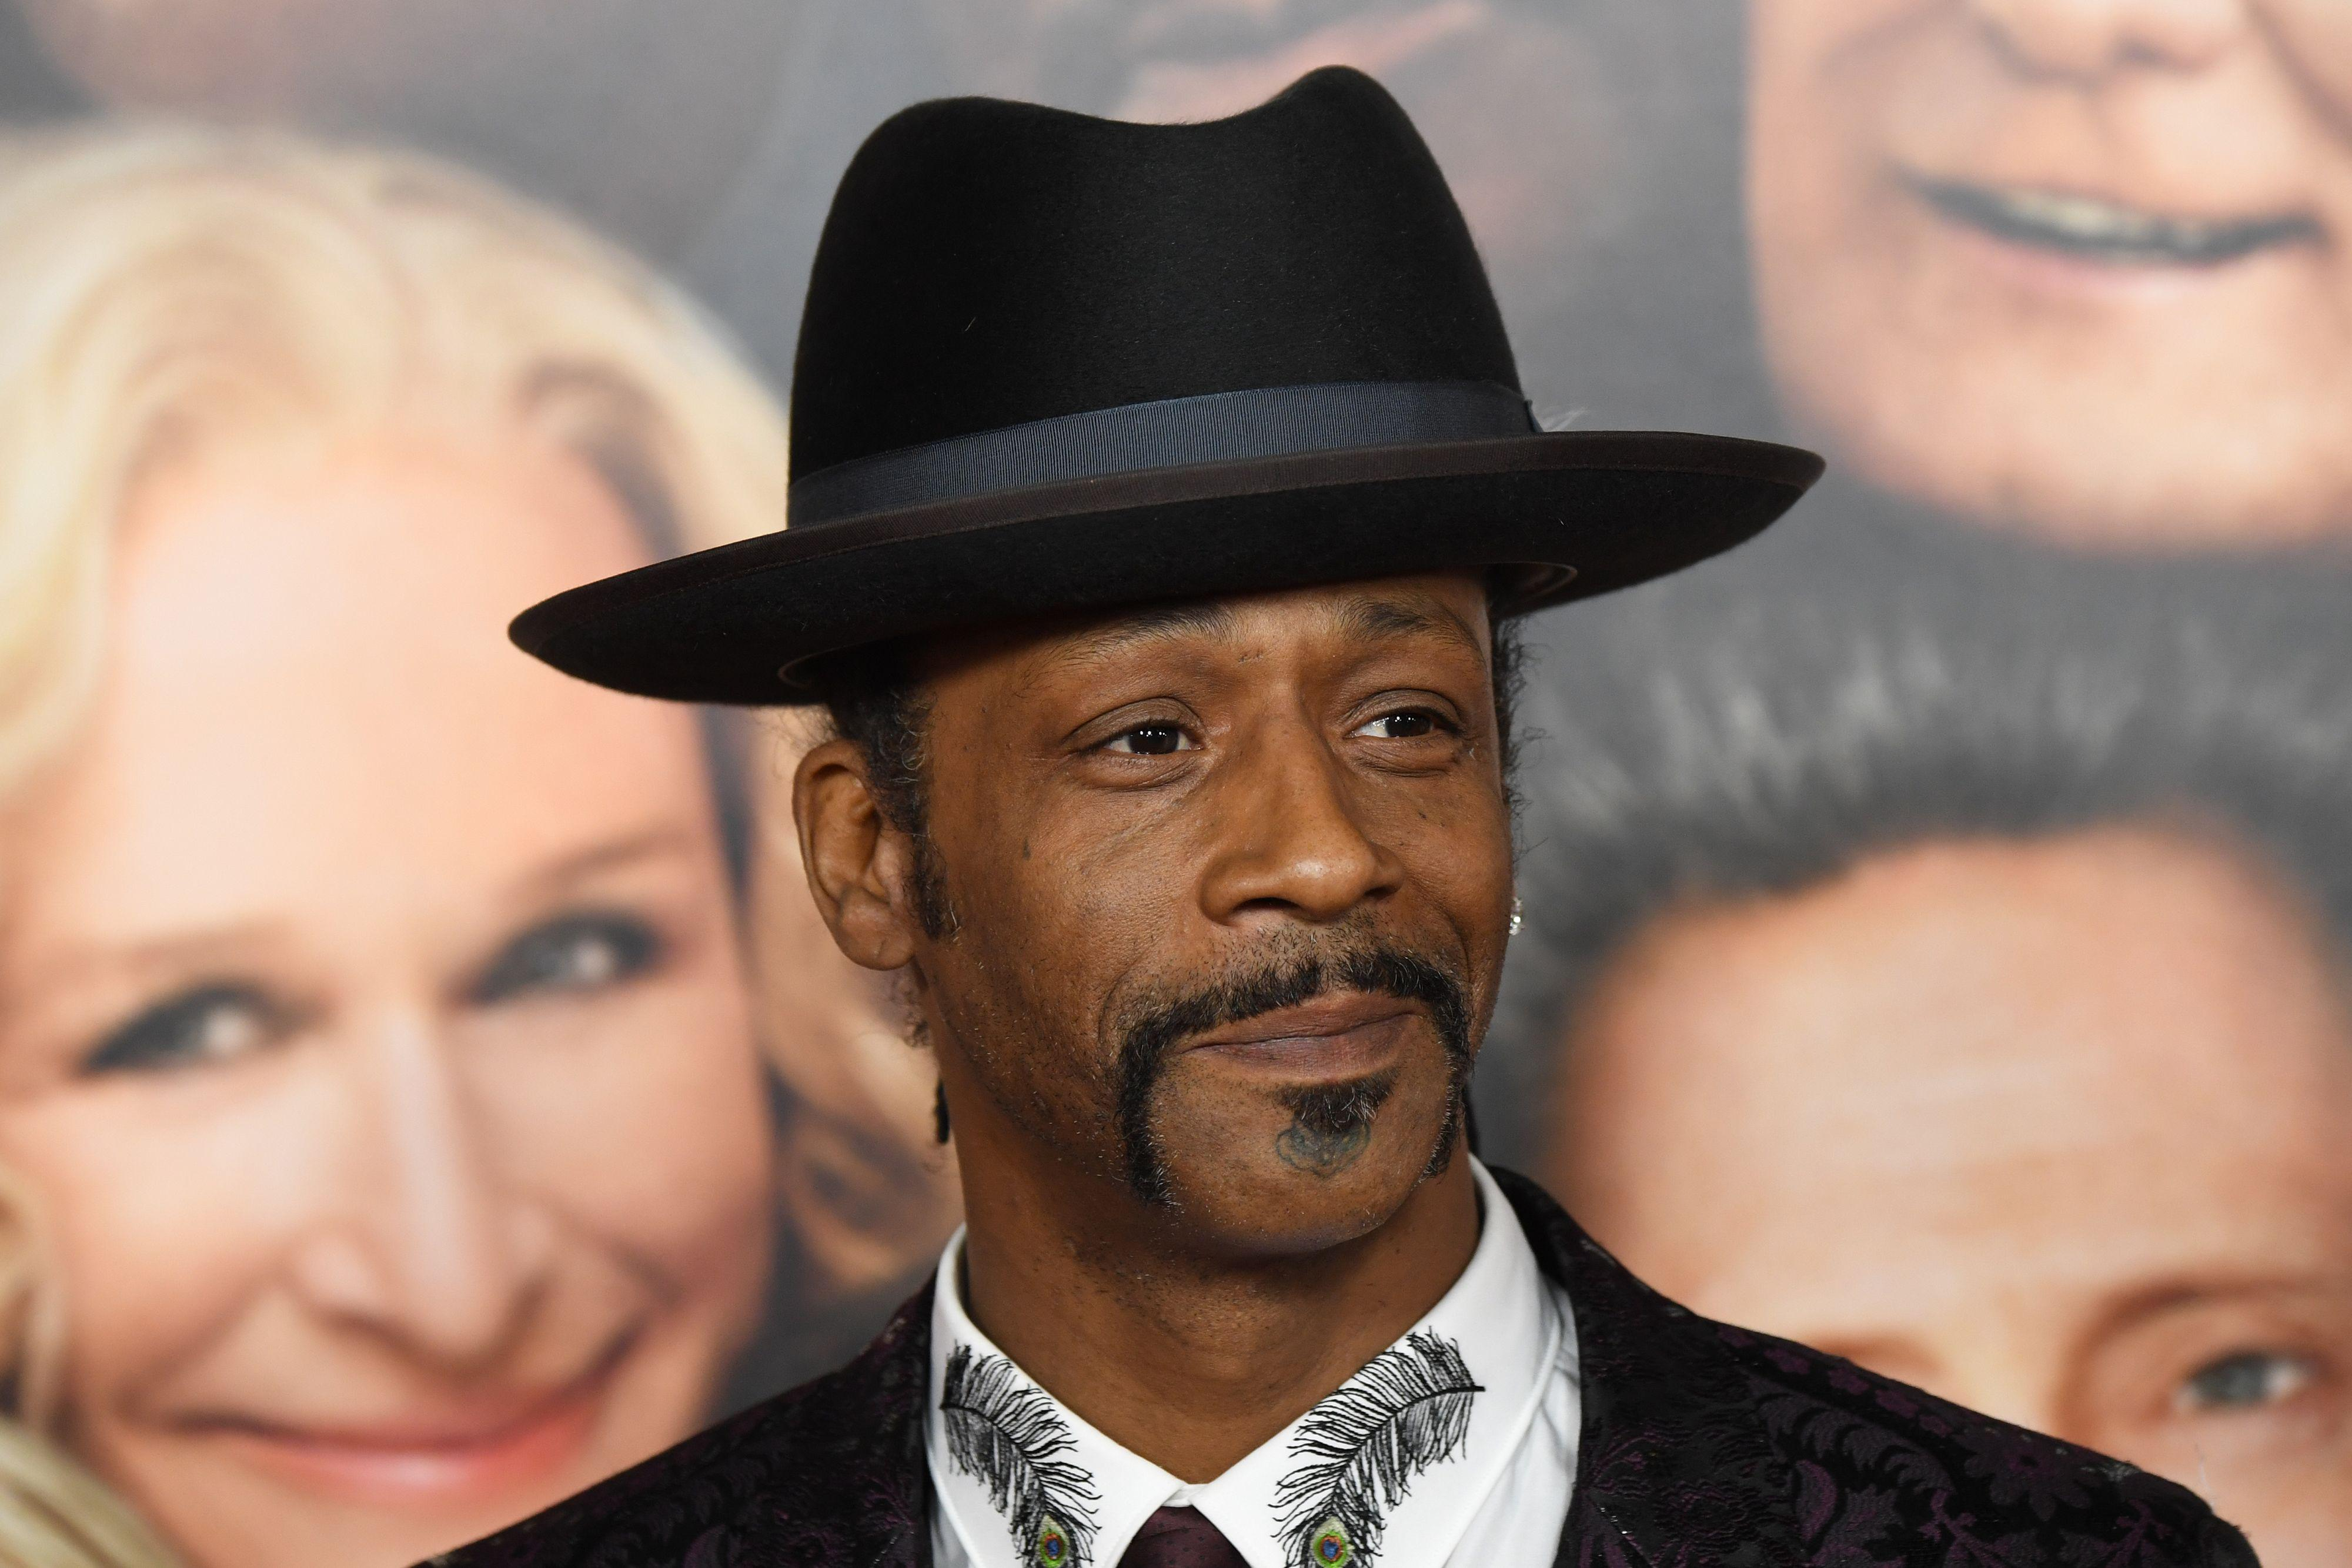 Actor Katt Williams attends the premiere of 'Father Figures'at the TCL Chinese Theater in Hollywood, California.